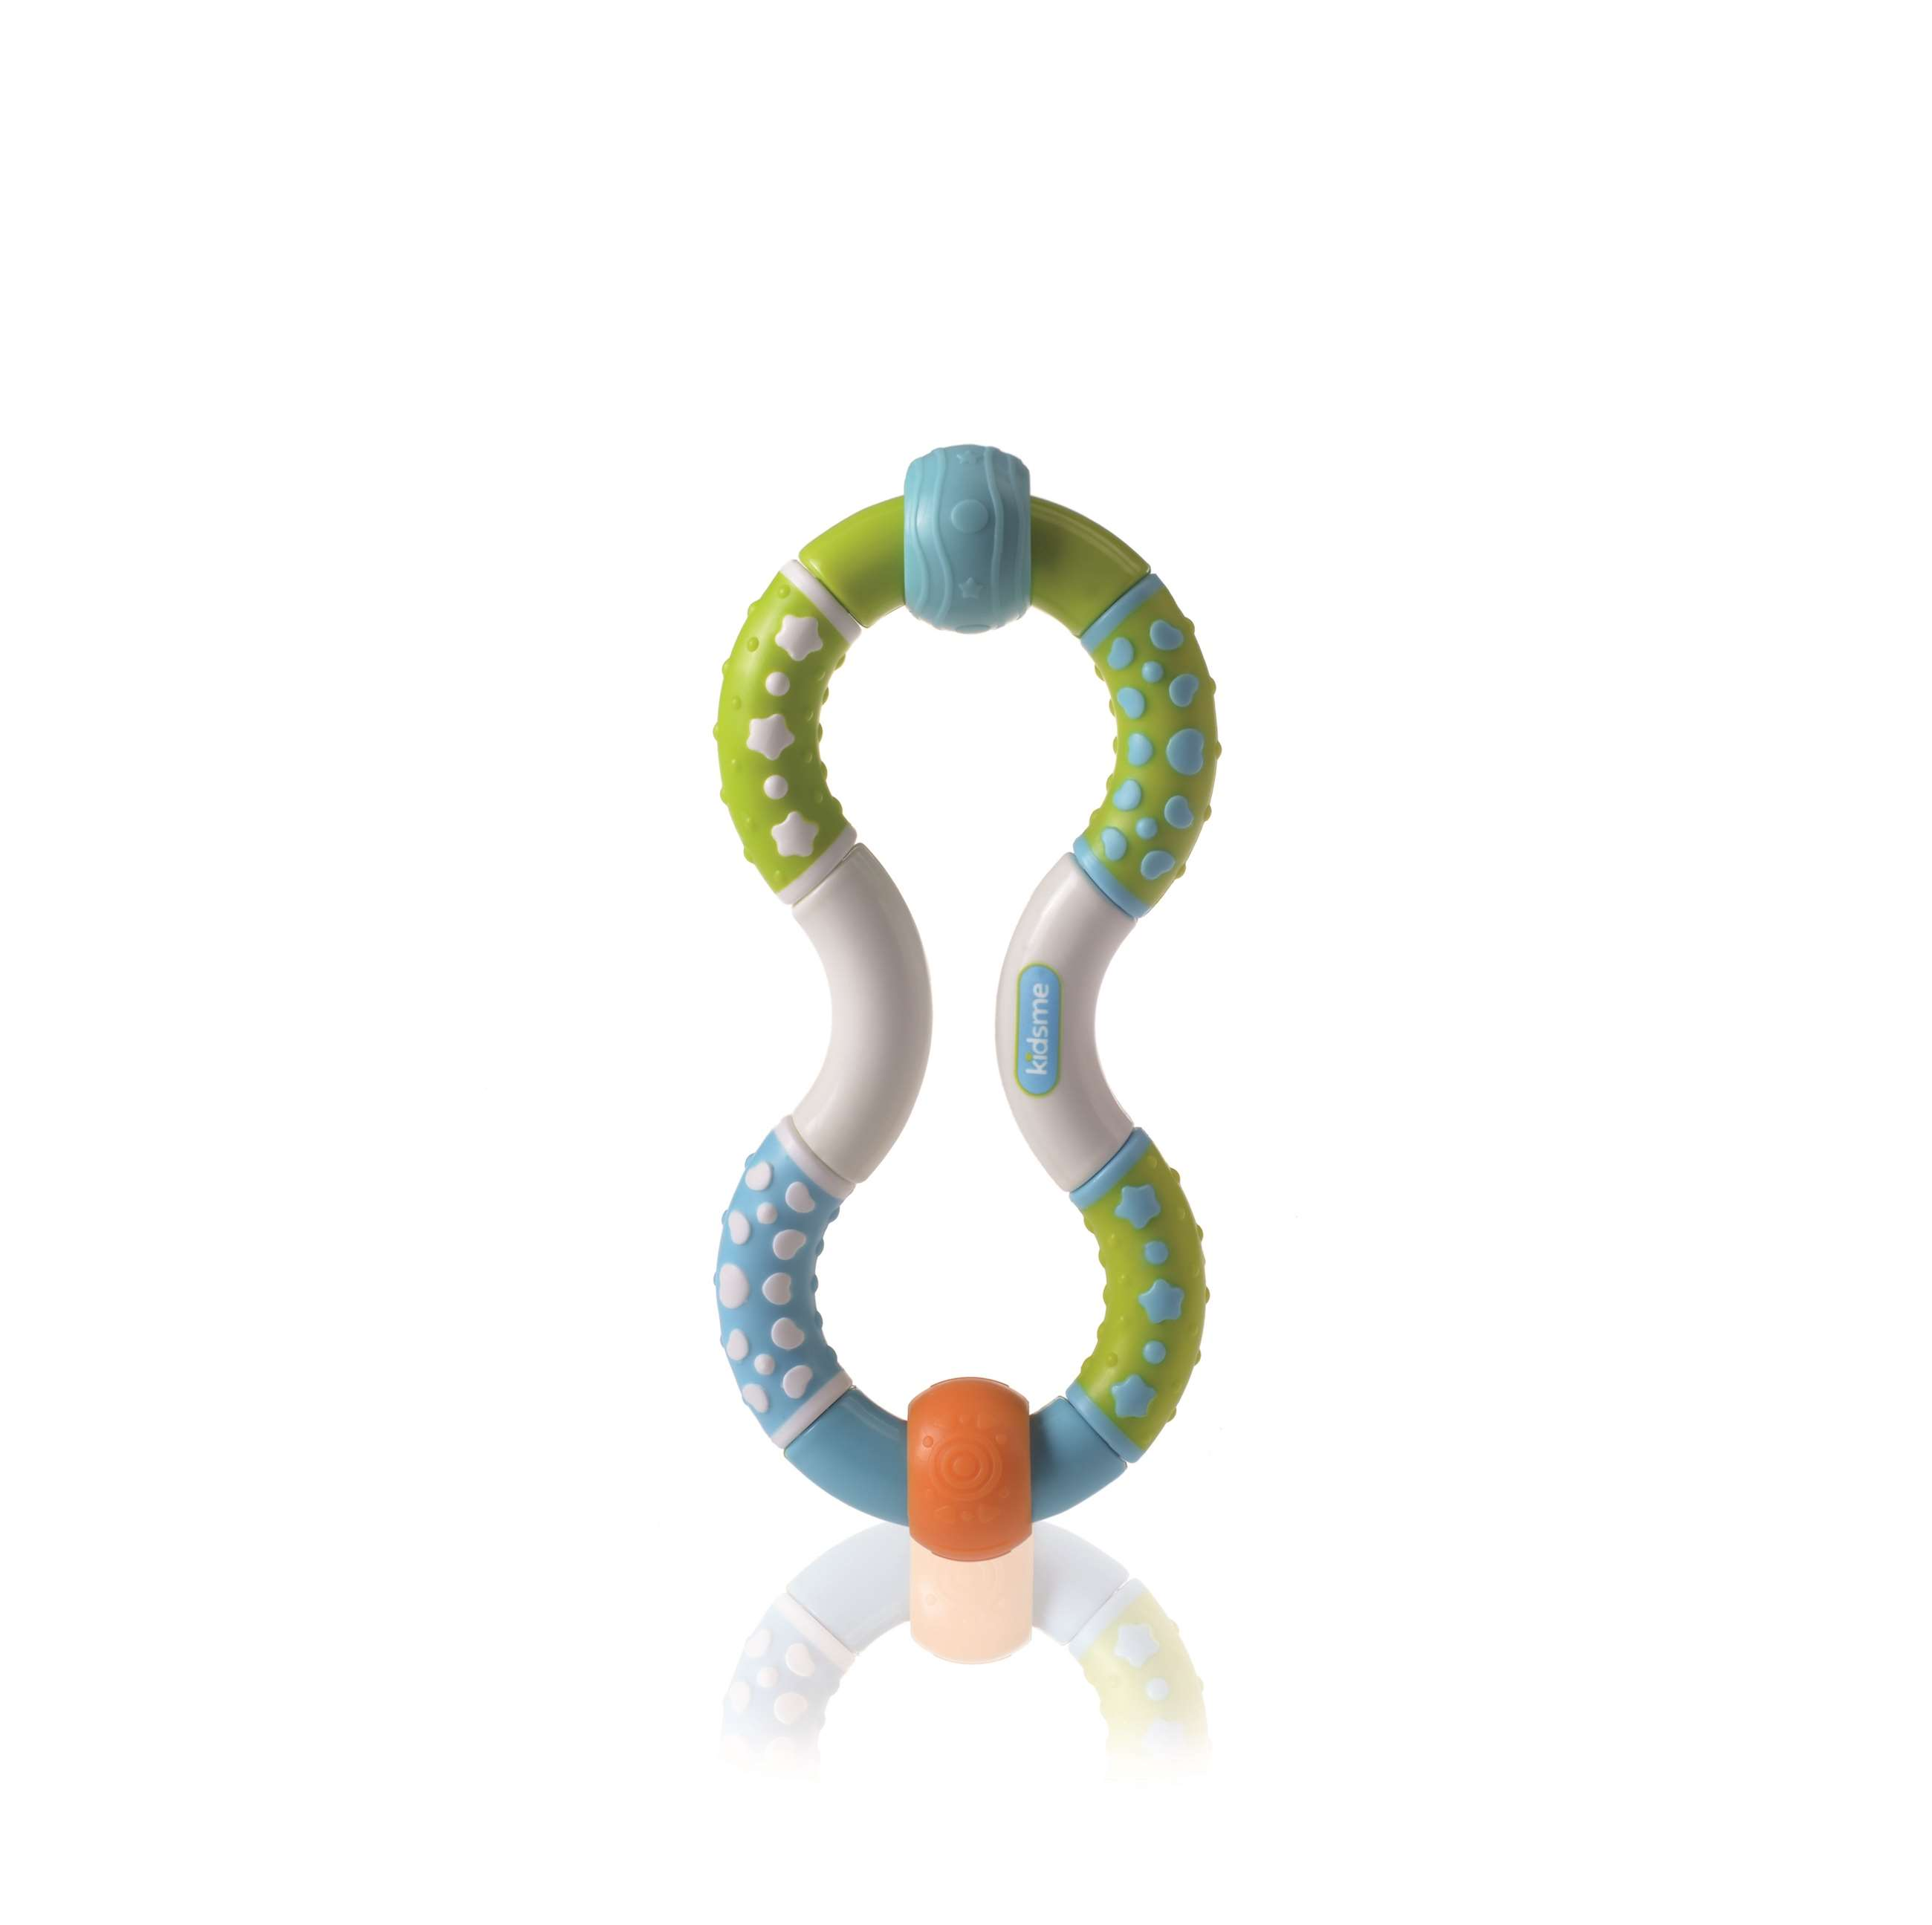 2636 - kidsme twist and learn ring rattle - 9584-01